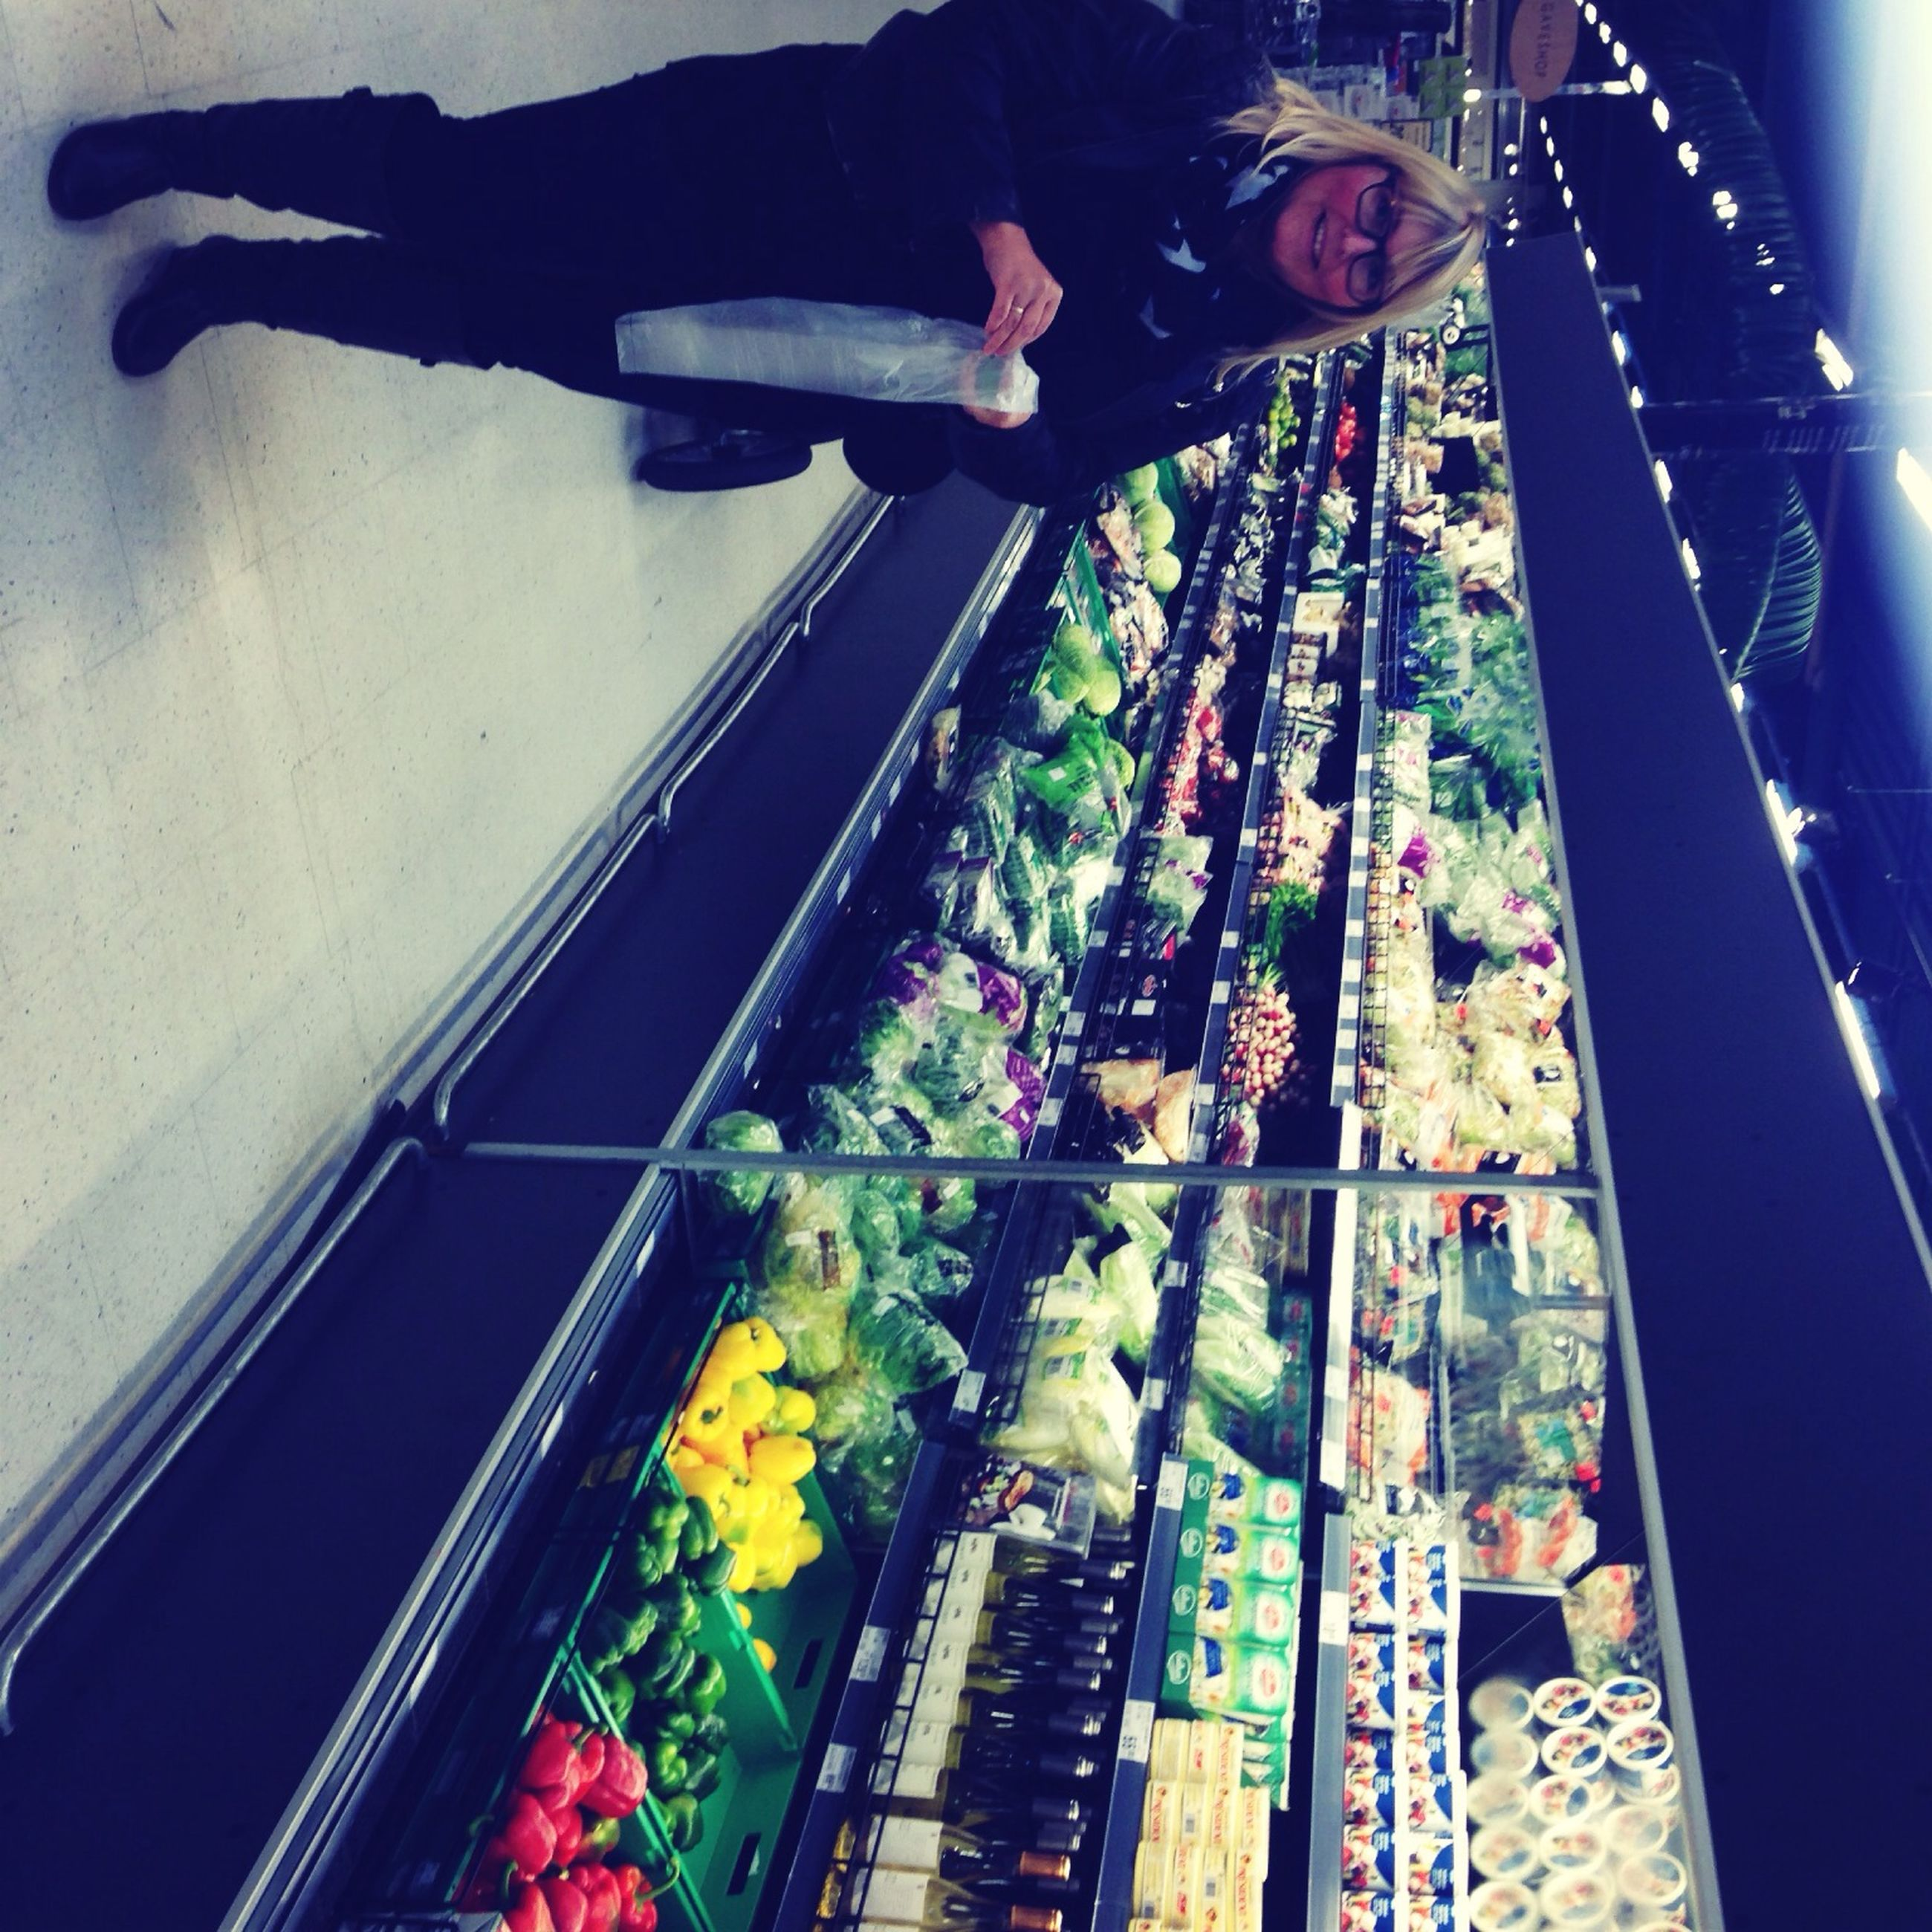 indoors, multi colored, lifestyles, standing, men, leisure activity, hanging, built structure, person, architecture, reflection, low angle view, part of, wall - building feature, low section, day, casual clothing, high angle view